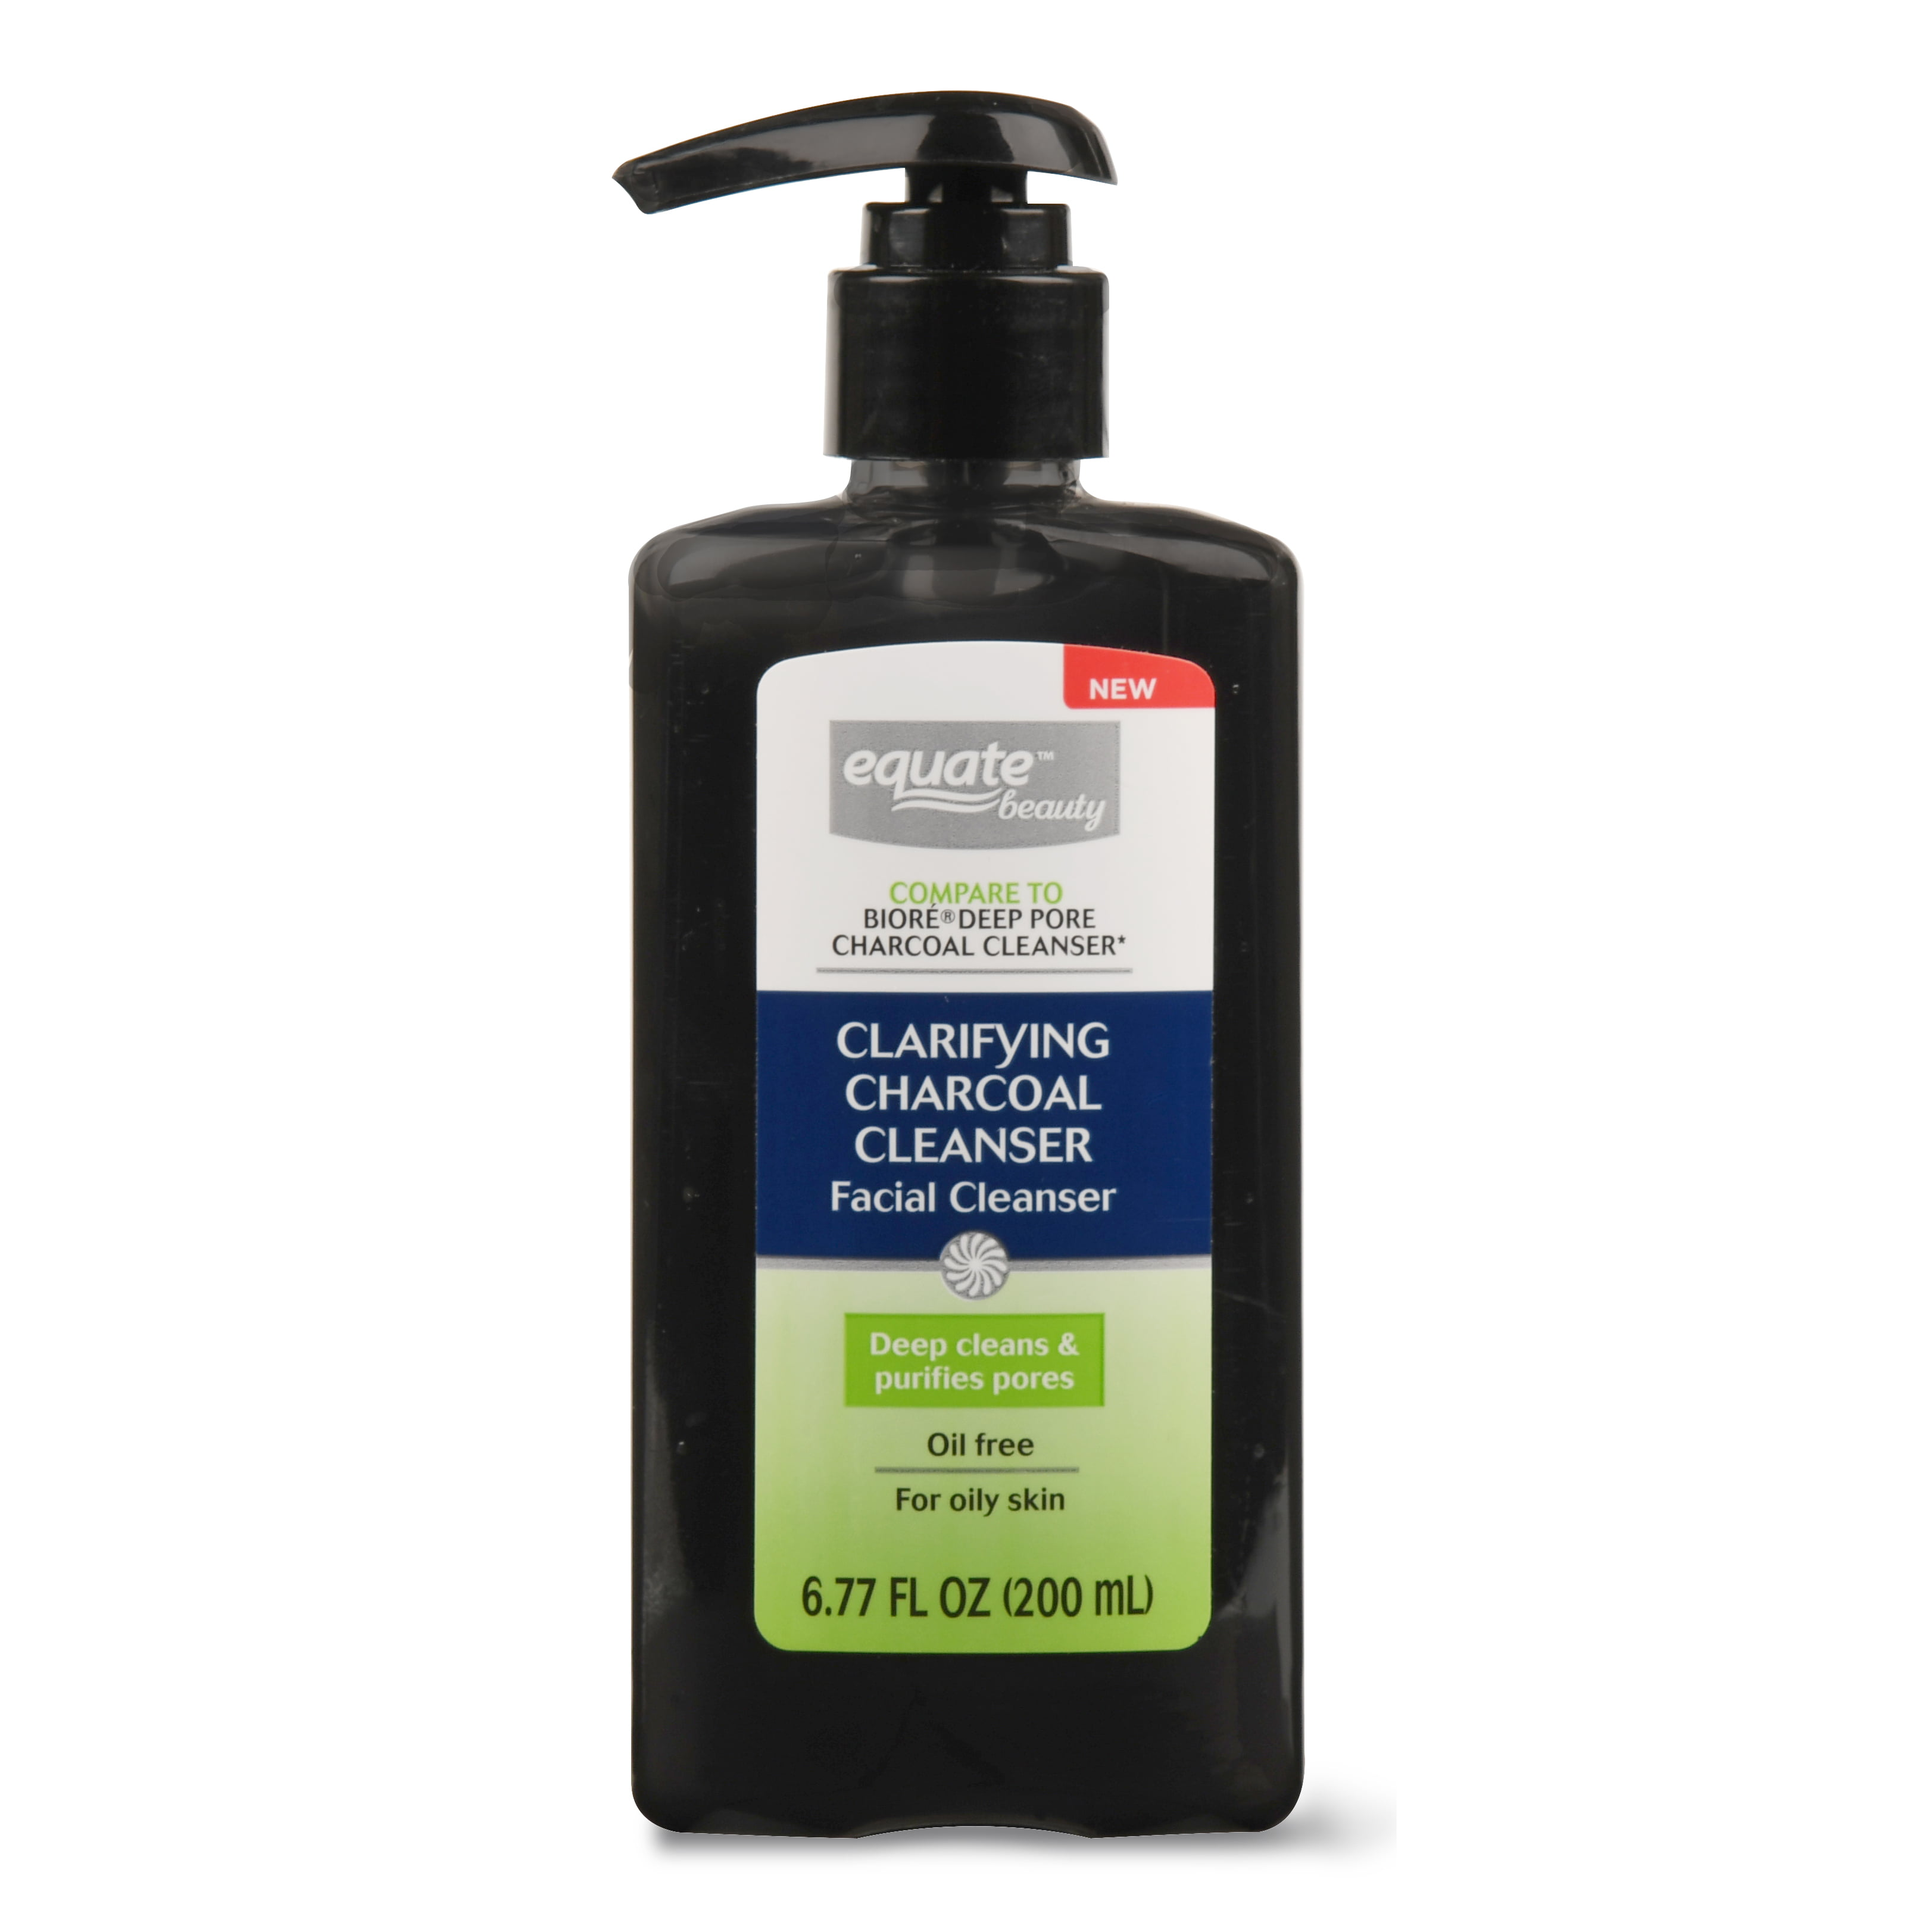 clarifying facial cleanser Equate